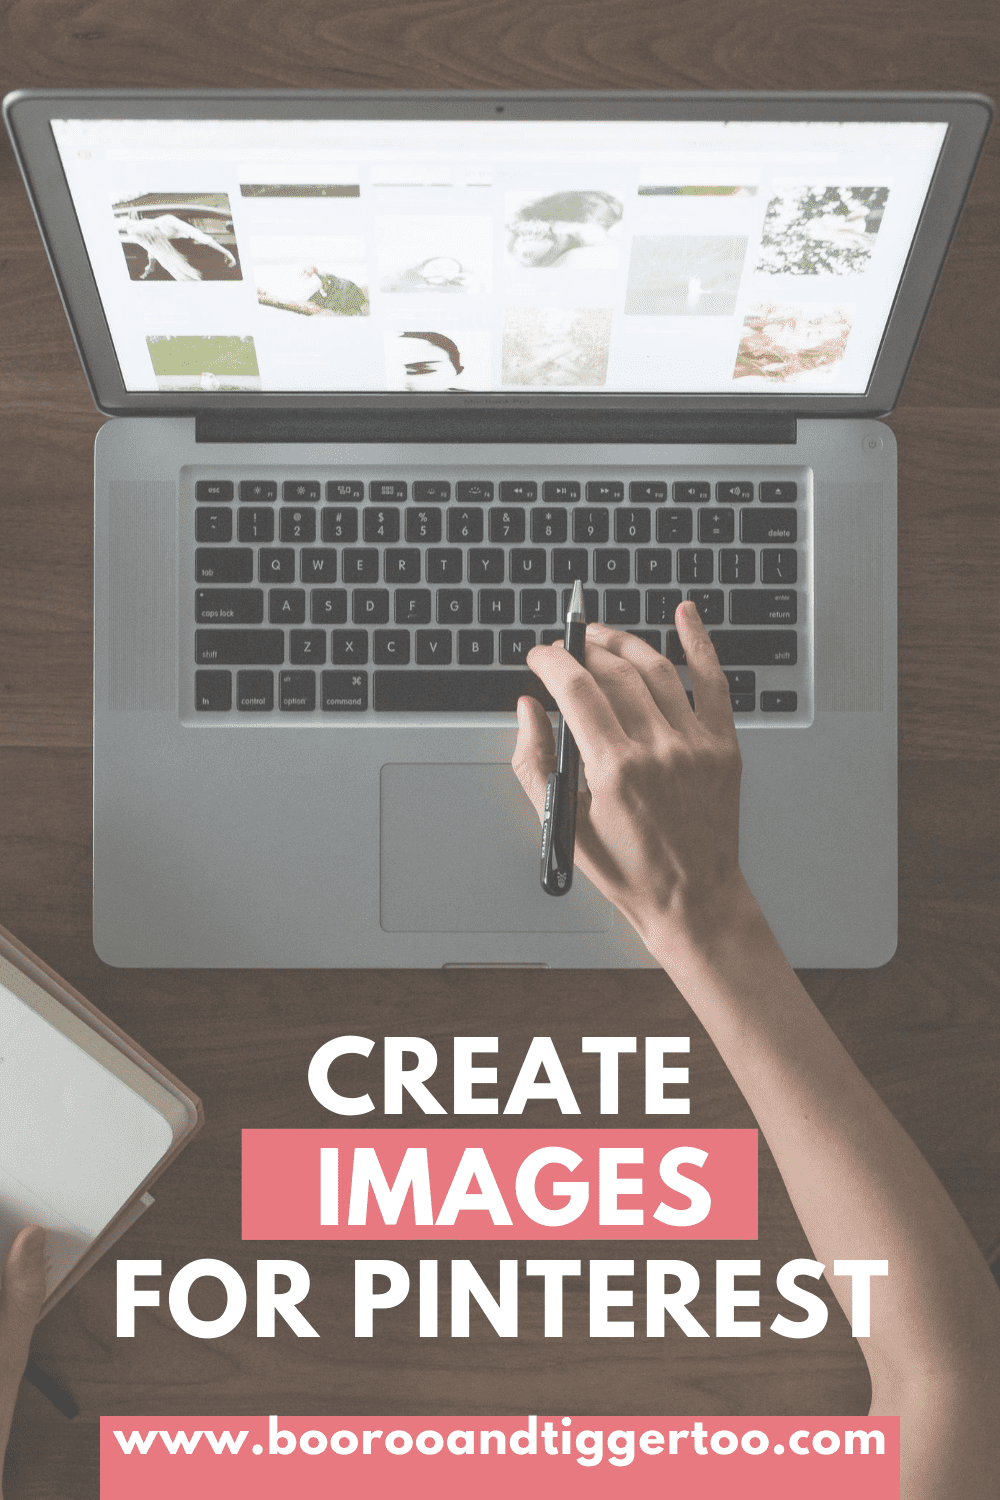 Create images for Pinterest